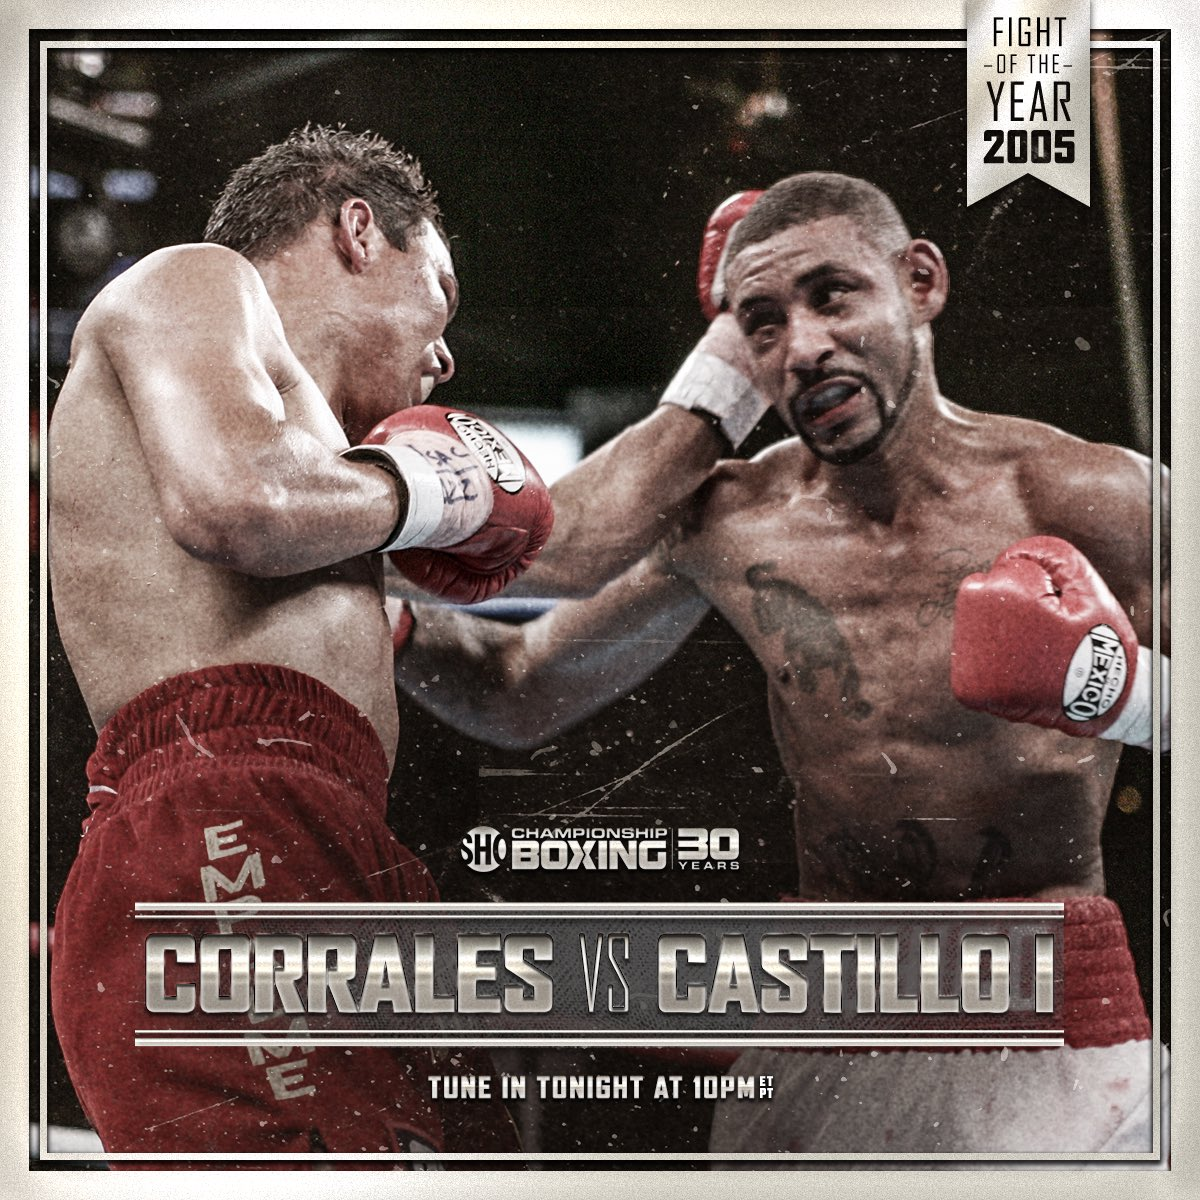 b1c980c2f34276 whether you re seeing it again or the 1st time corrales castillo will give  you chills